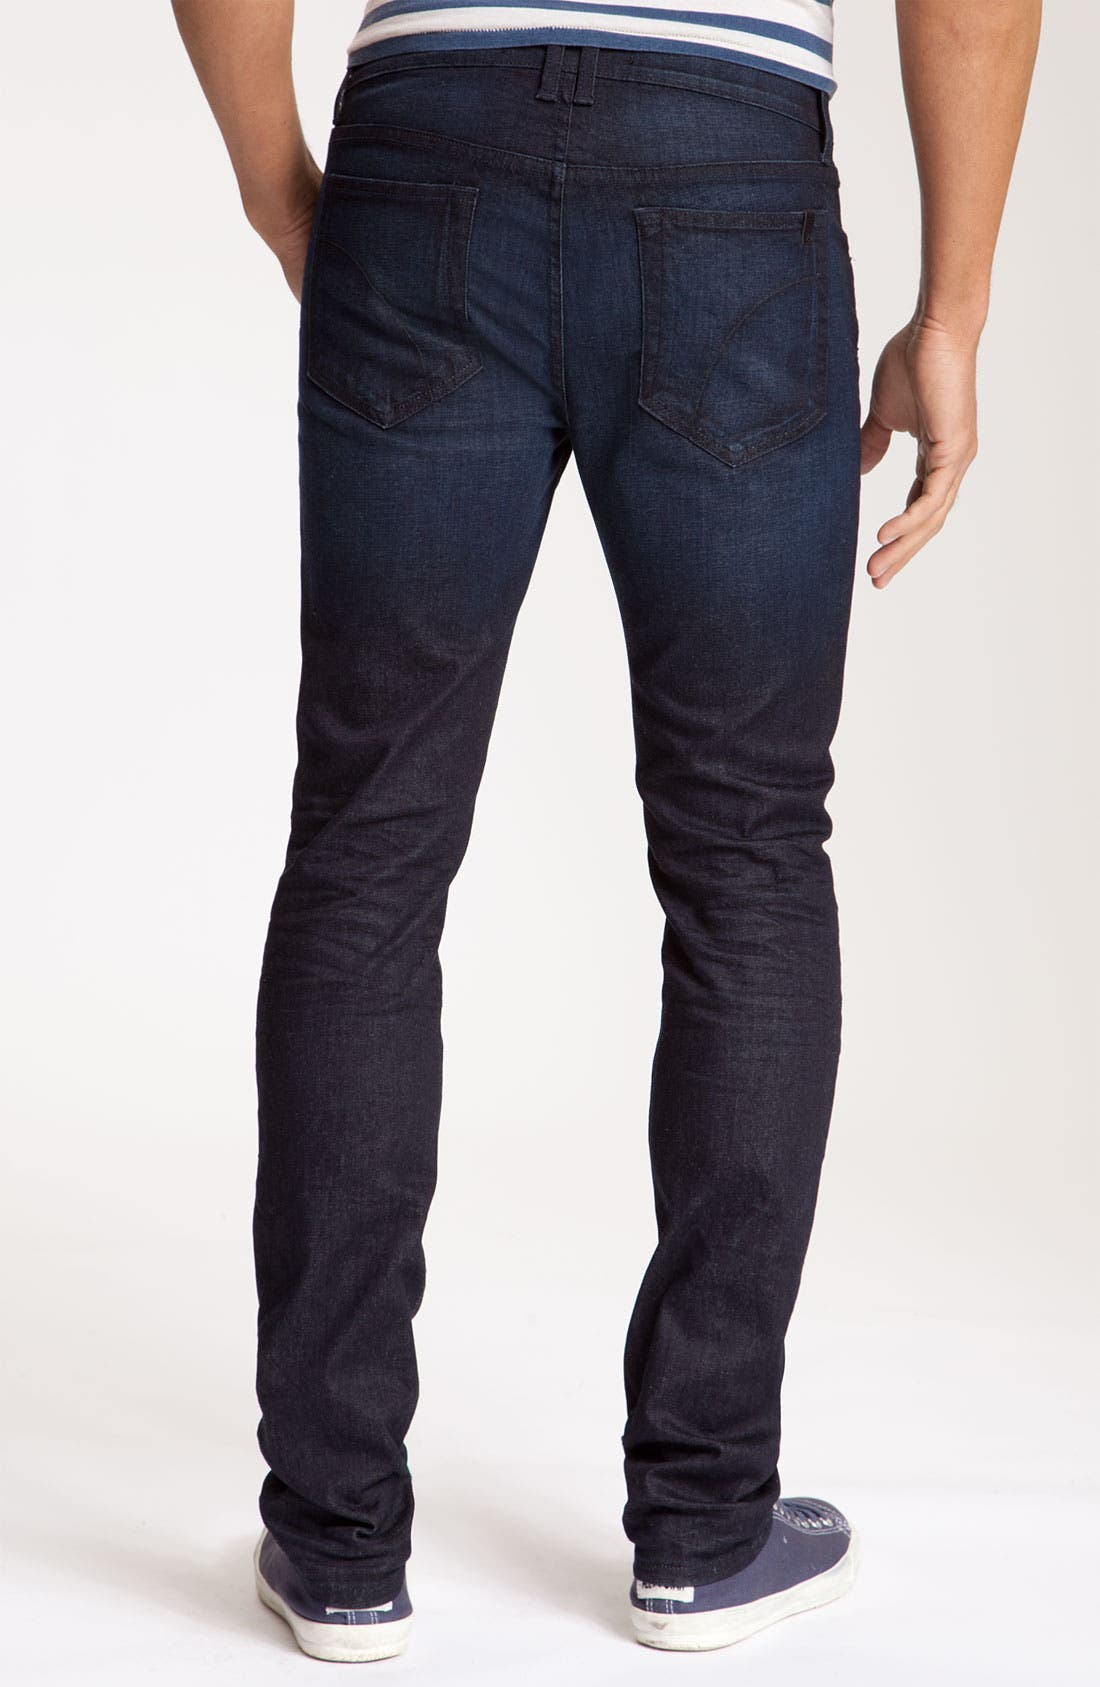 Alternate Image 1 Selected - Joe's 'Super Slim' Skinny Jeans (Leo)